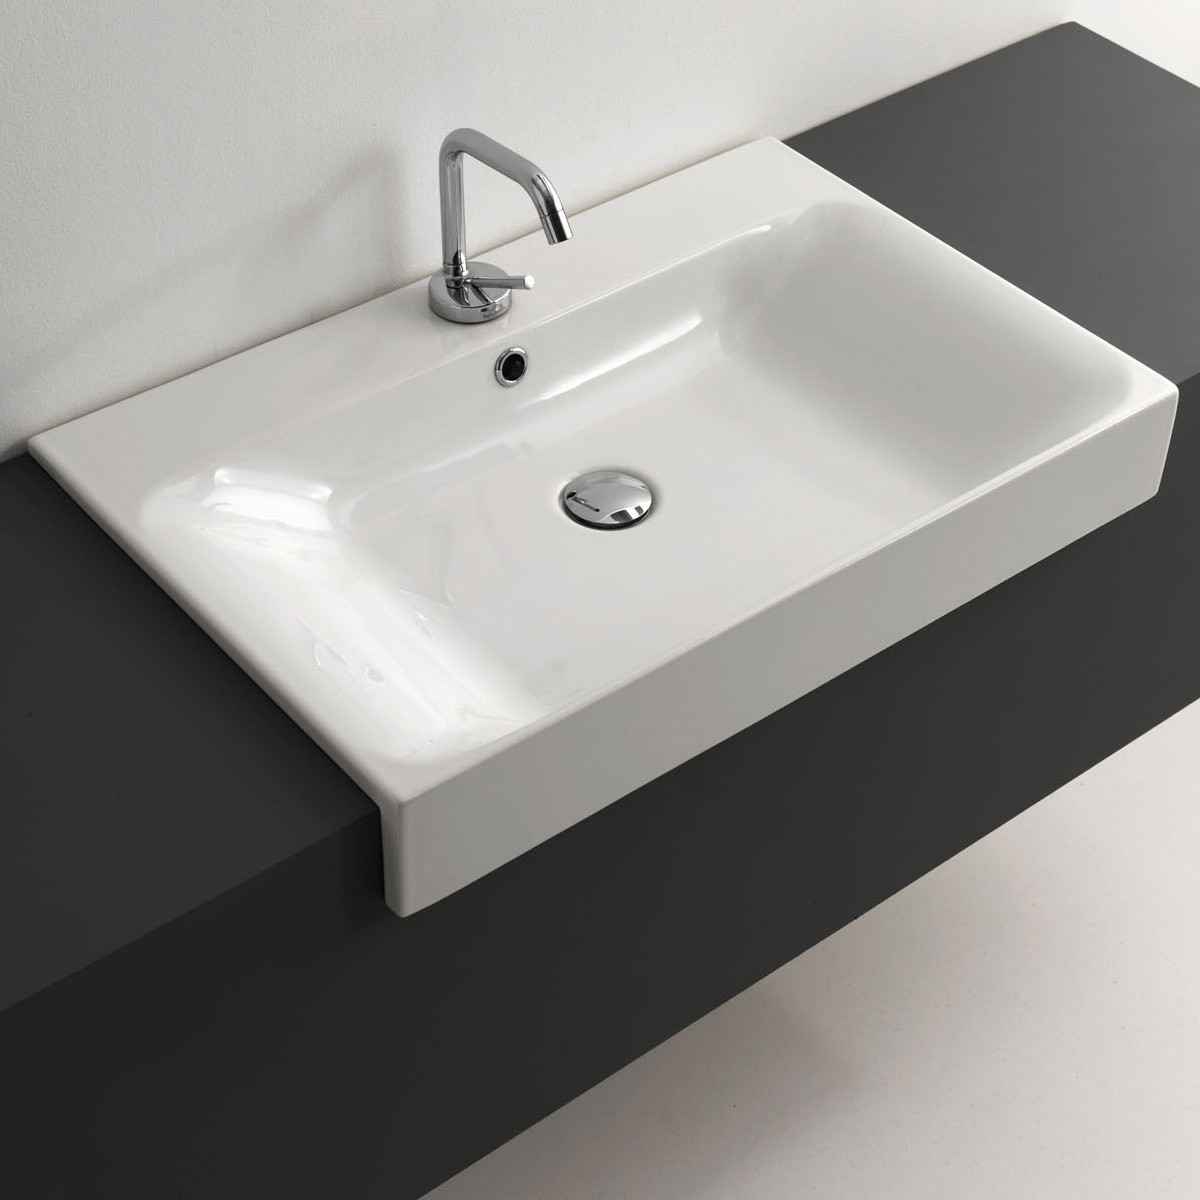 /wp/wp-content/uploads/2019/11/cento-3548-semi-recessed-bathroom-sink-27-6-x-17-7-085.jpg